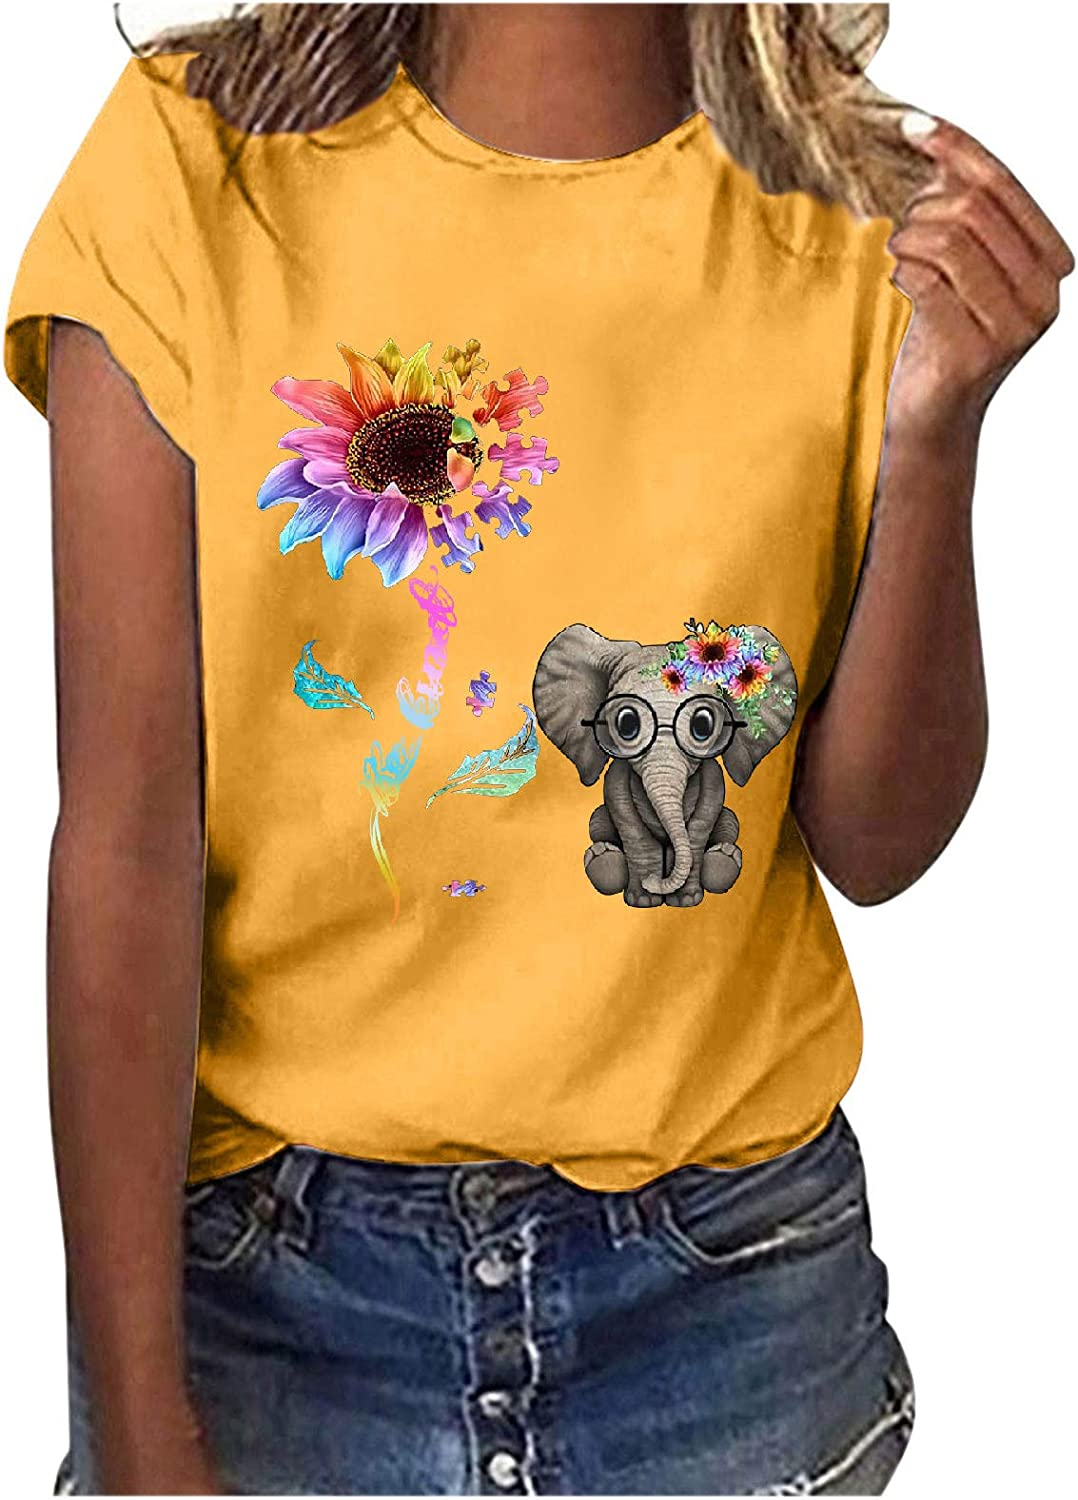 T Shirts for Women, Womens Summer Casual Printed O Neck Short Sleeves Loose Fit Shirt Tops Tunic Blouse Tee Tops